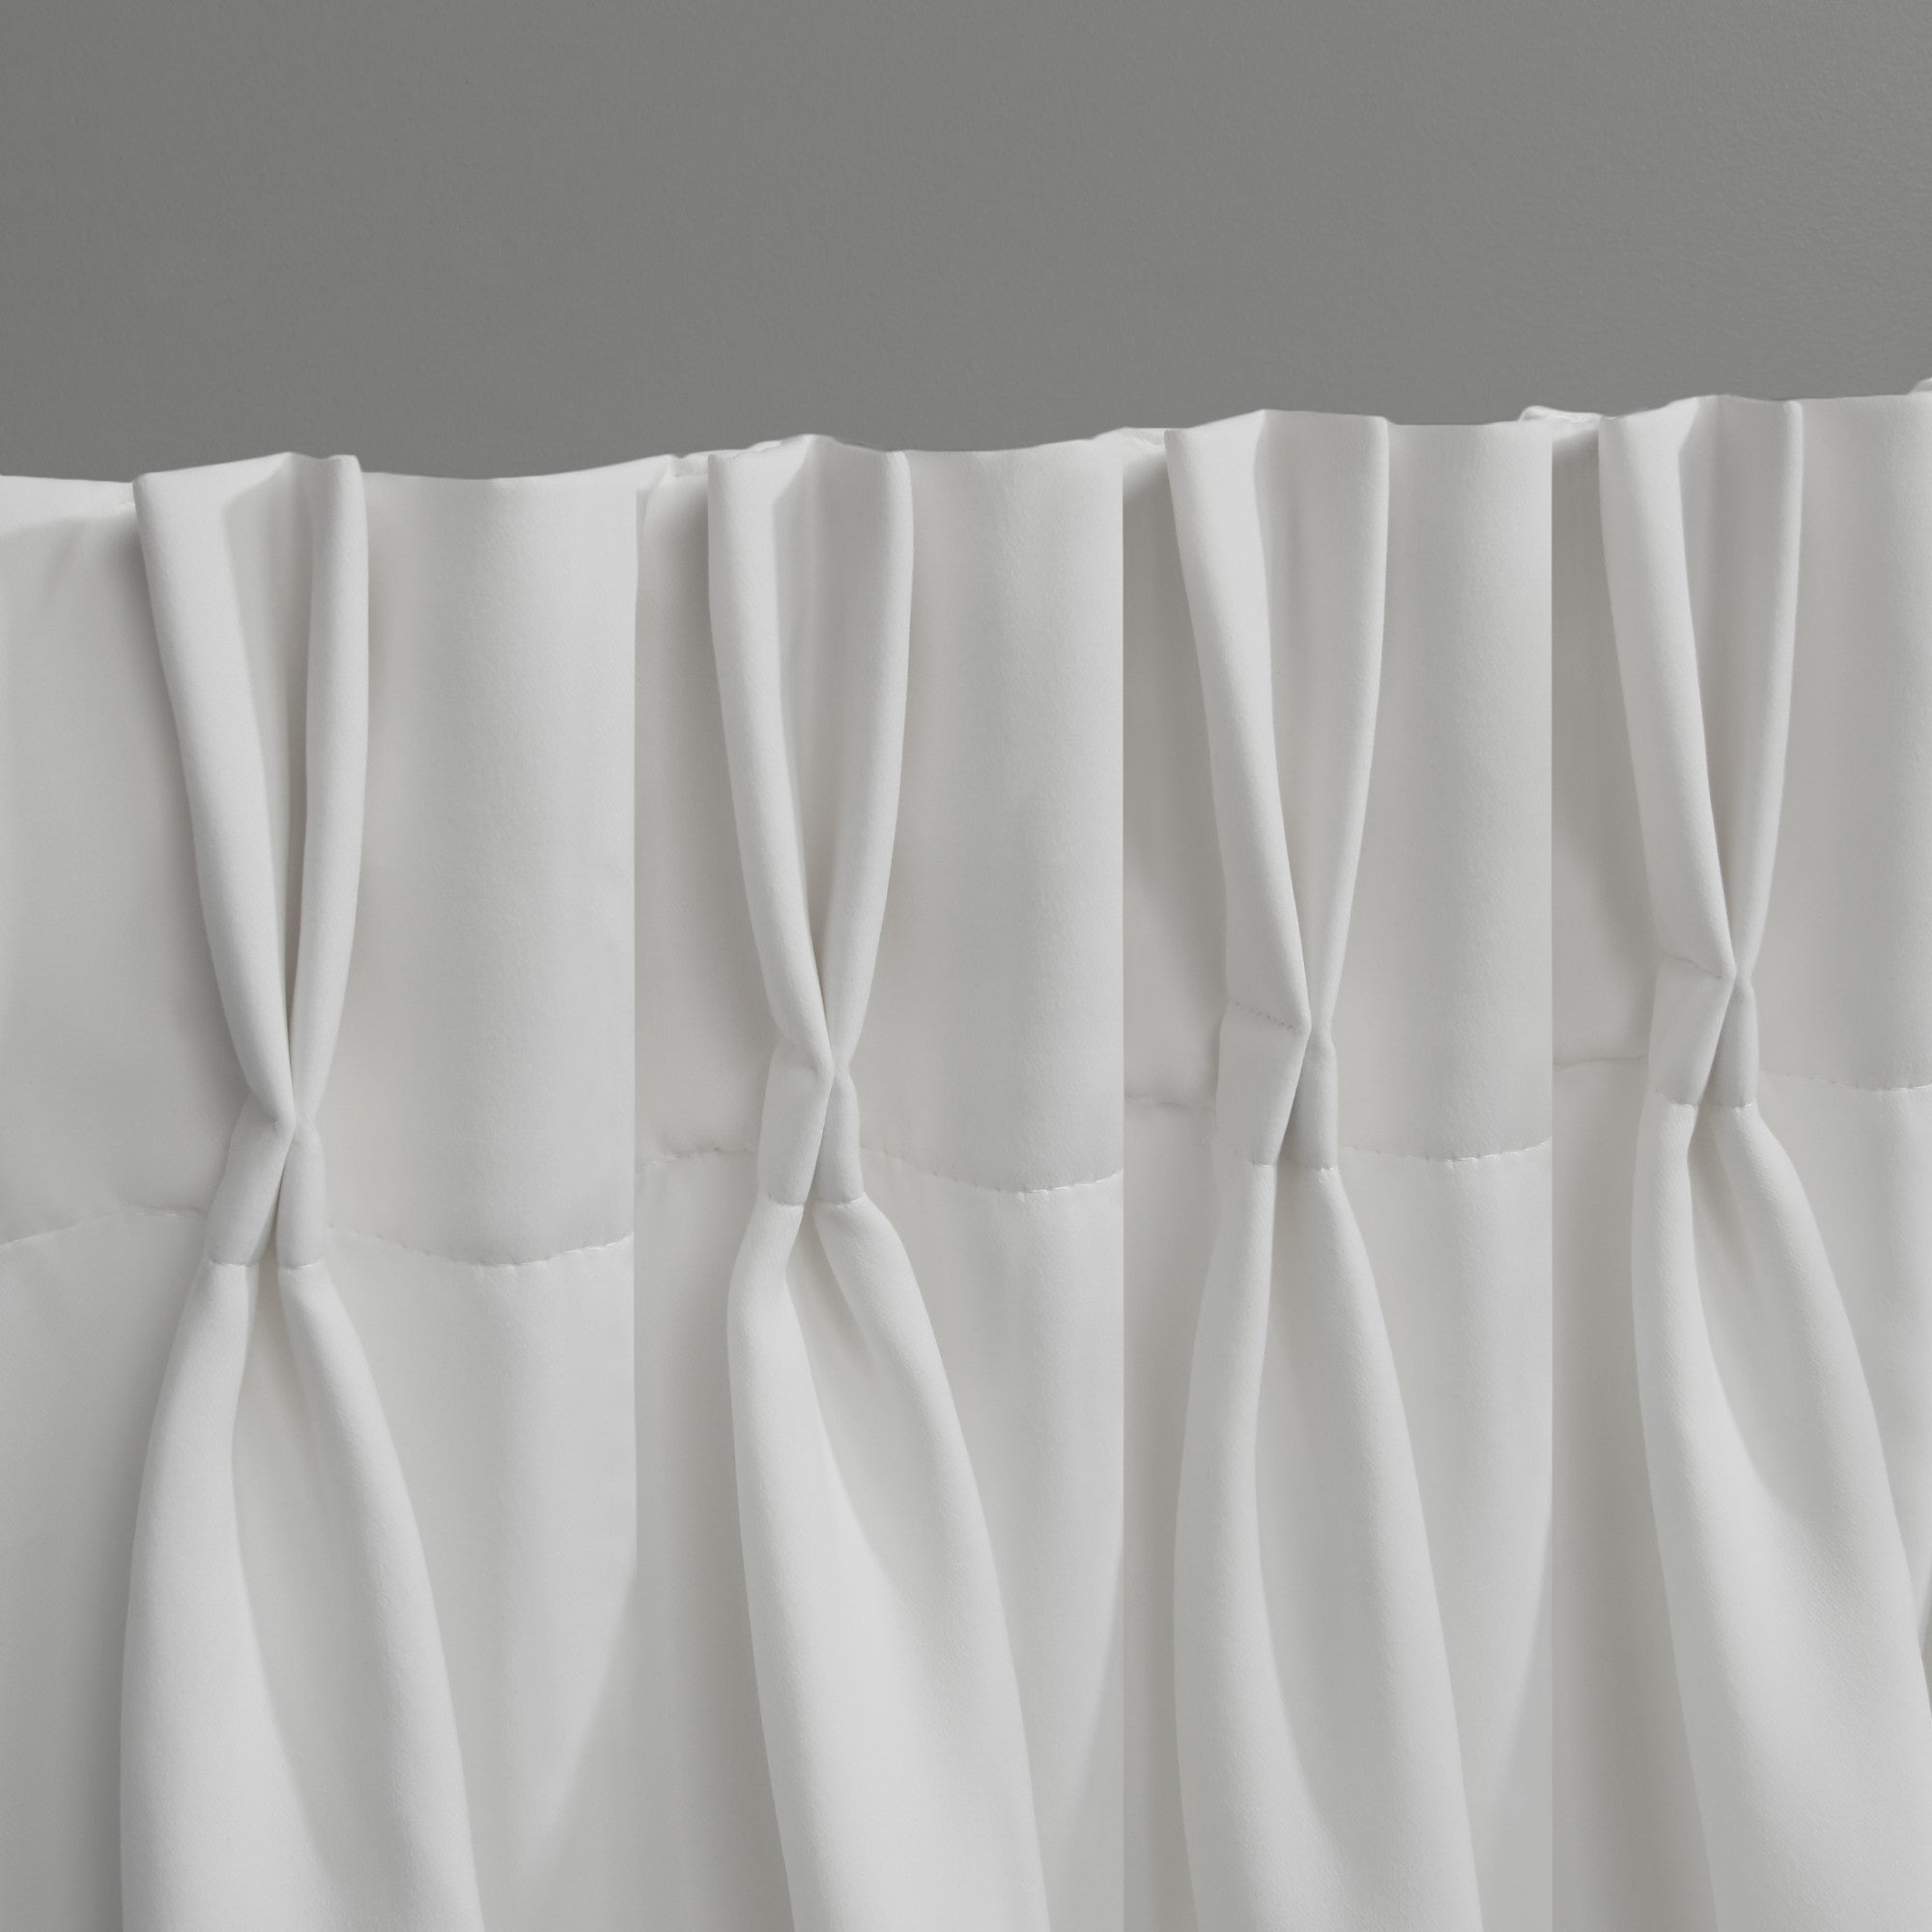 Ati Home Belgian Jacquard Sheer Double Pinch Pleat Top Curtain Panel Pair For Most Recent Double Pinch Pleat Top Curtain Panel Pairs (View 8 of 20)